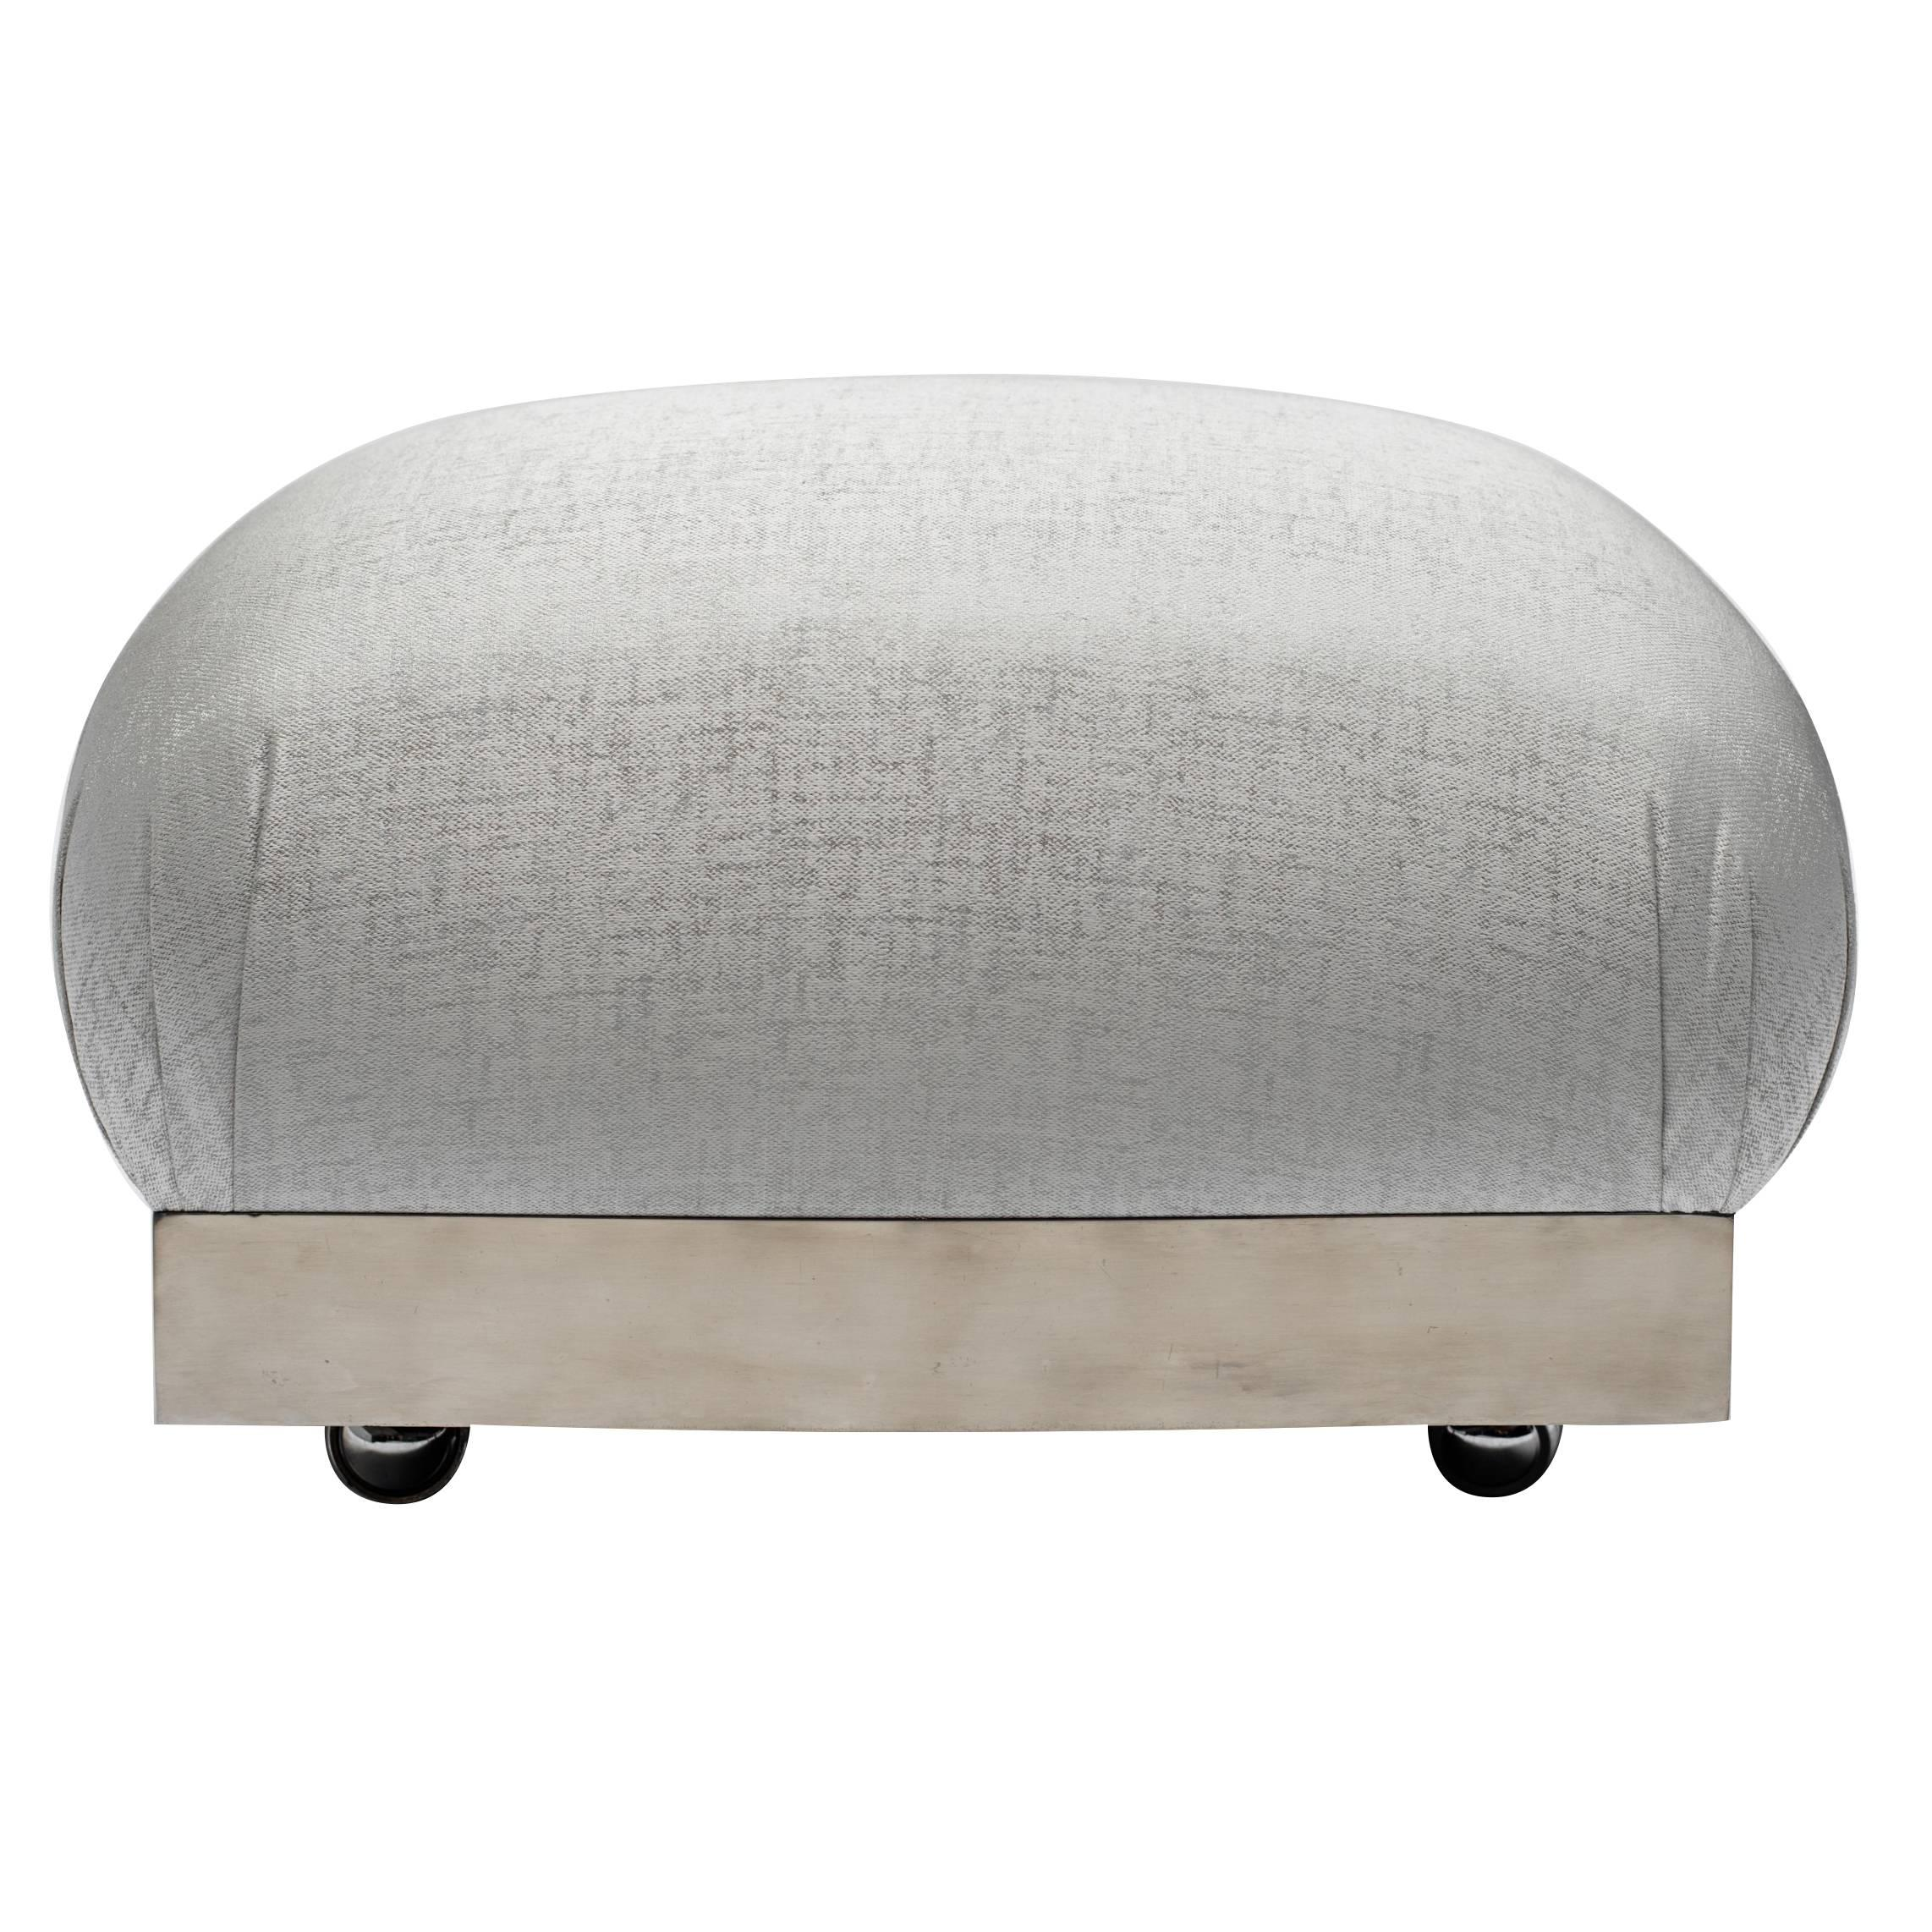 Karl Springer Style Oversized Ottoman or Pouf with Soufflé Design